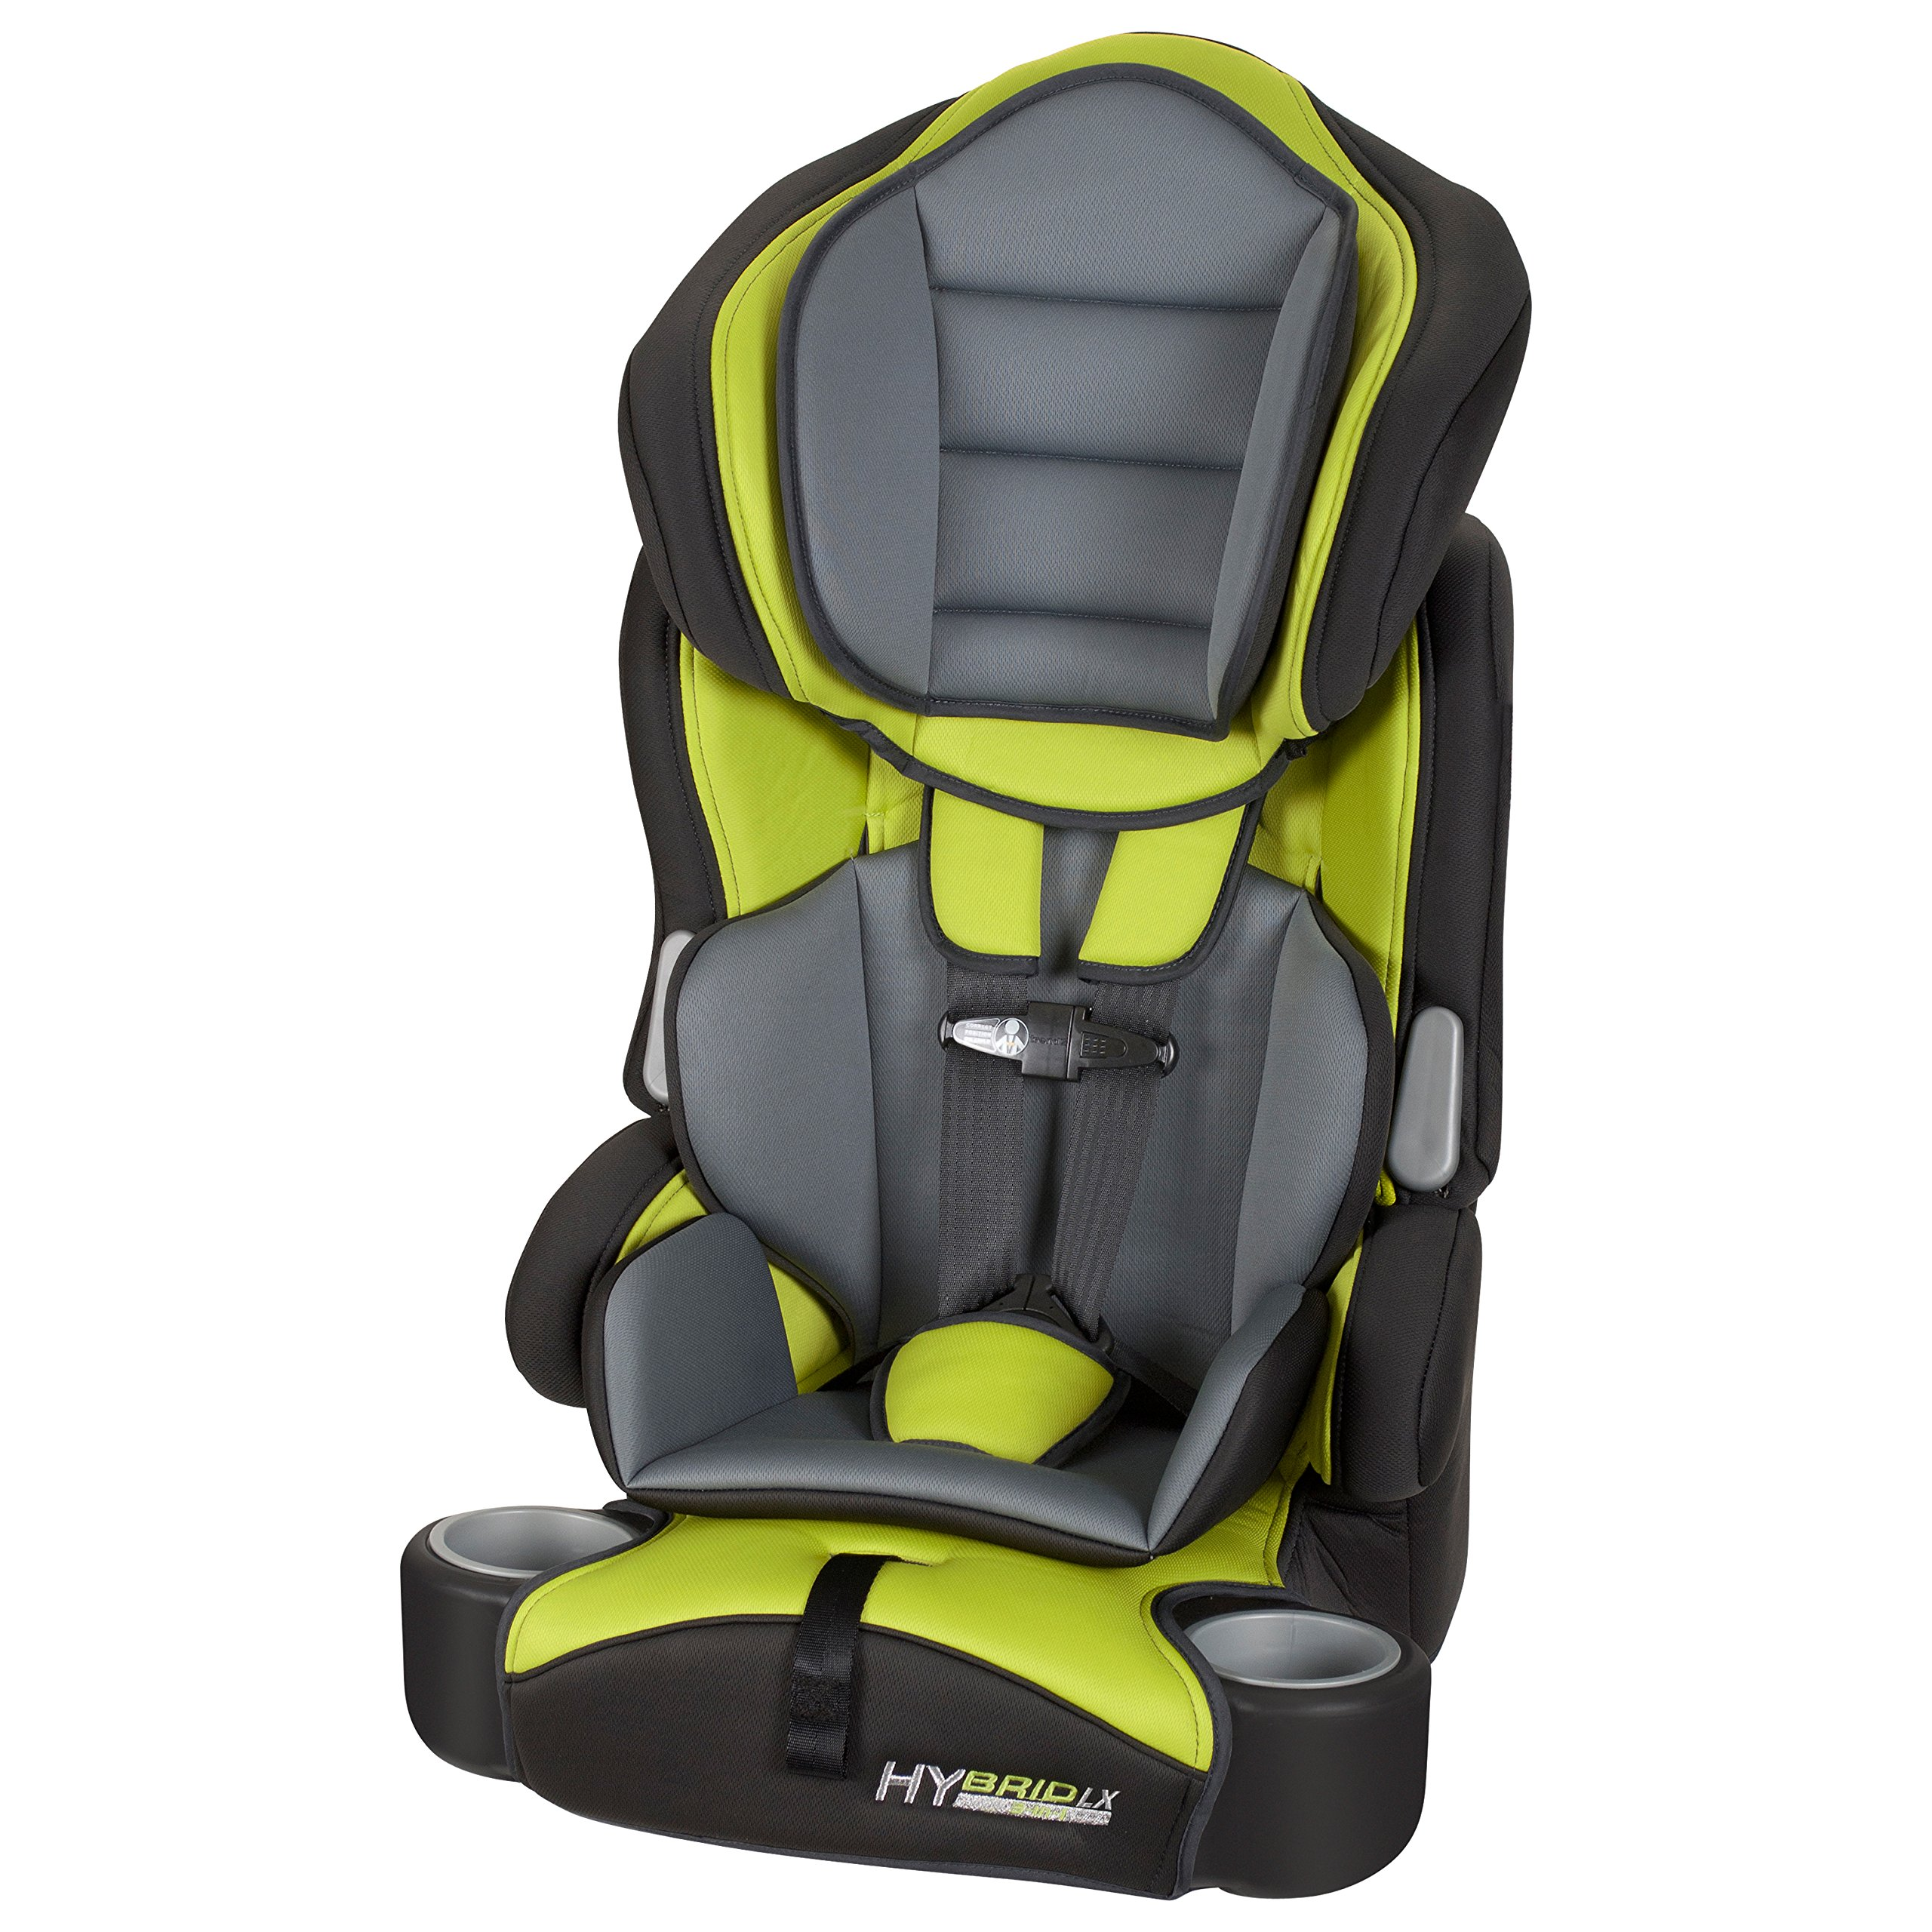 Amazon.com : Baby Trend Hybrid Booster 3-in-1 Car Seat